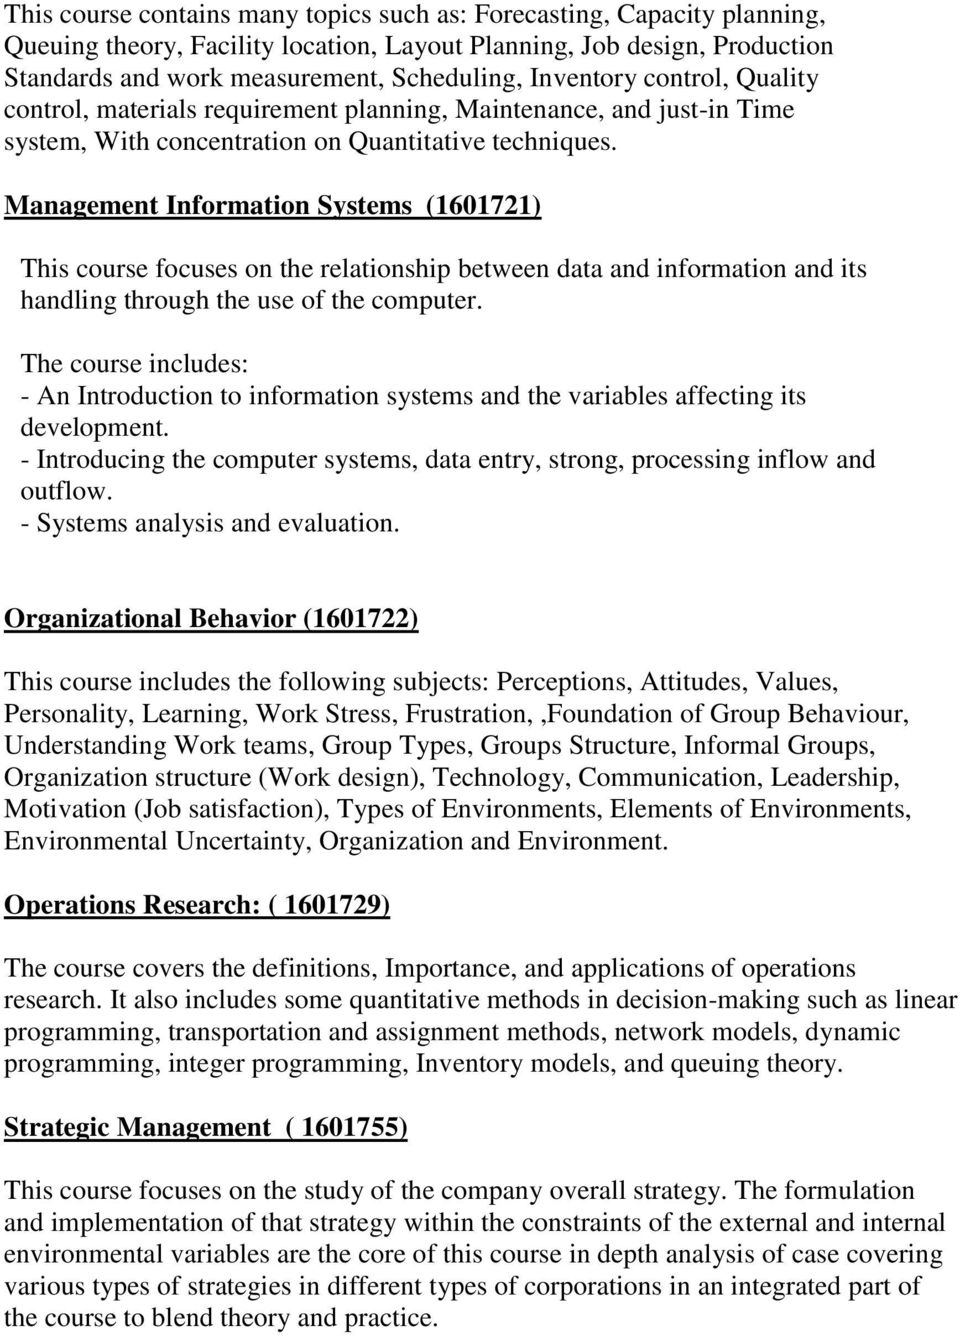 Management Information Systems (1601721) This course focuses on the relationship between data and information and its handling through the use of the computer.